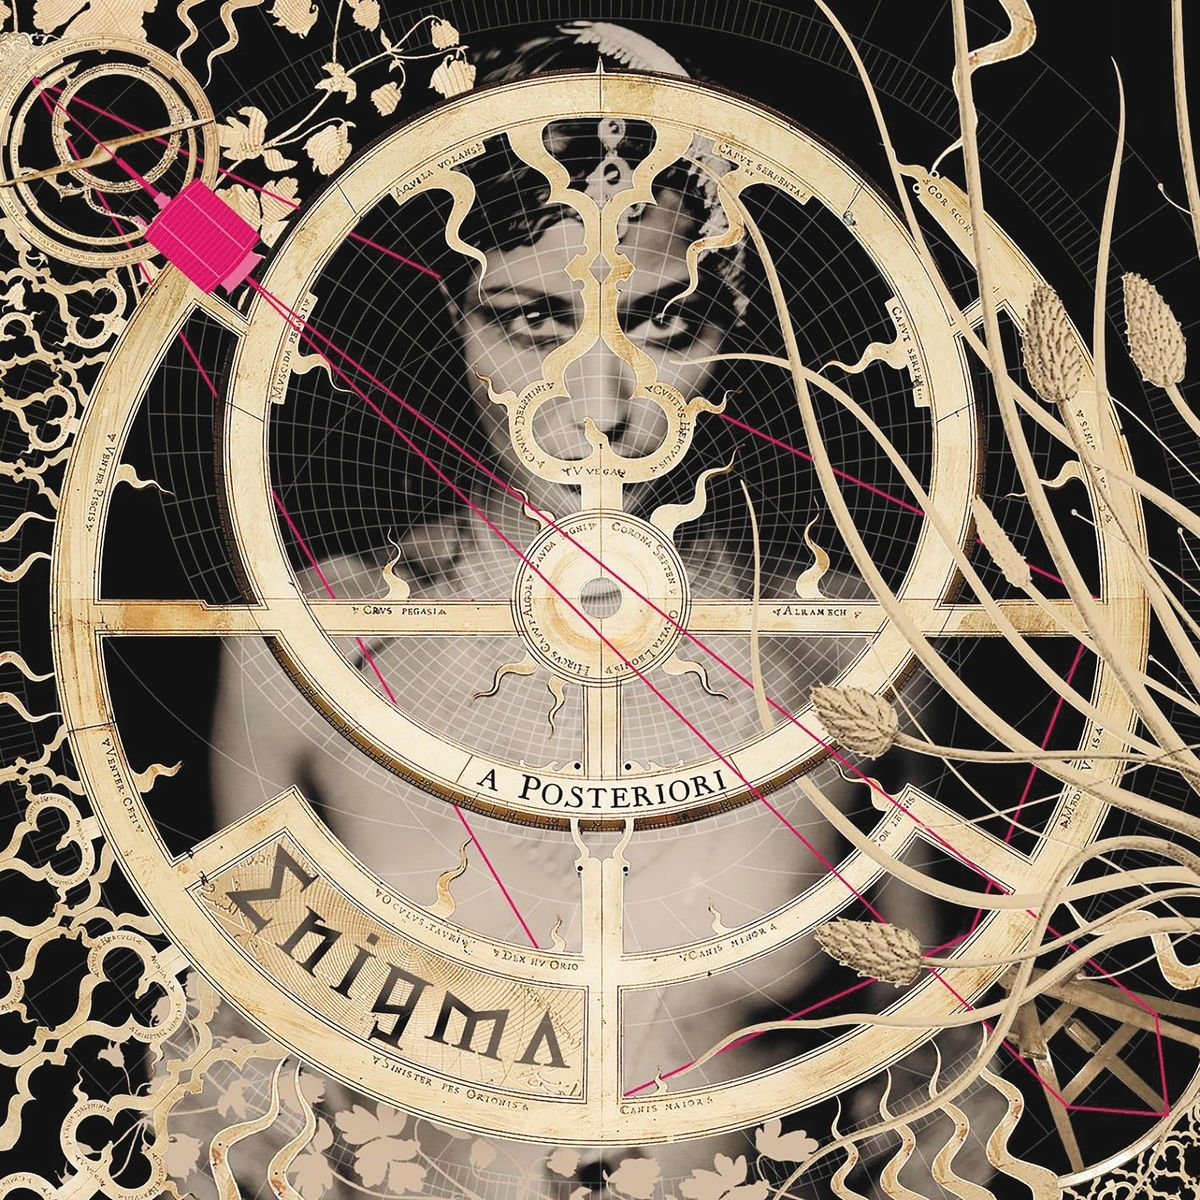 CD Shop - ENIGMA A POSTERIORI/COLORED LP